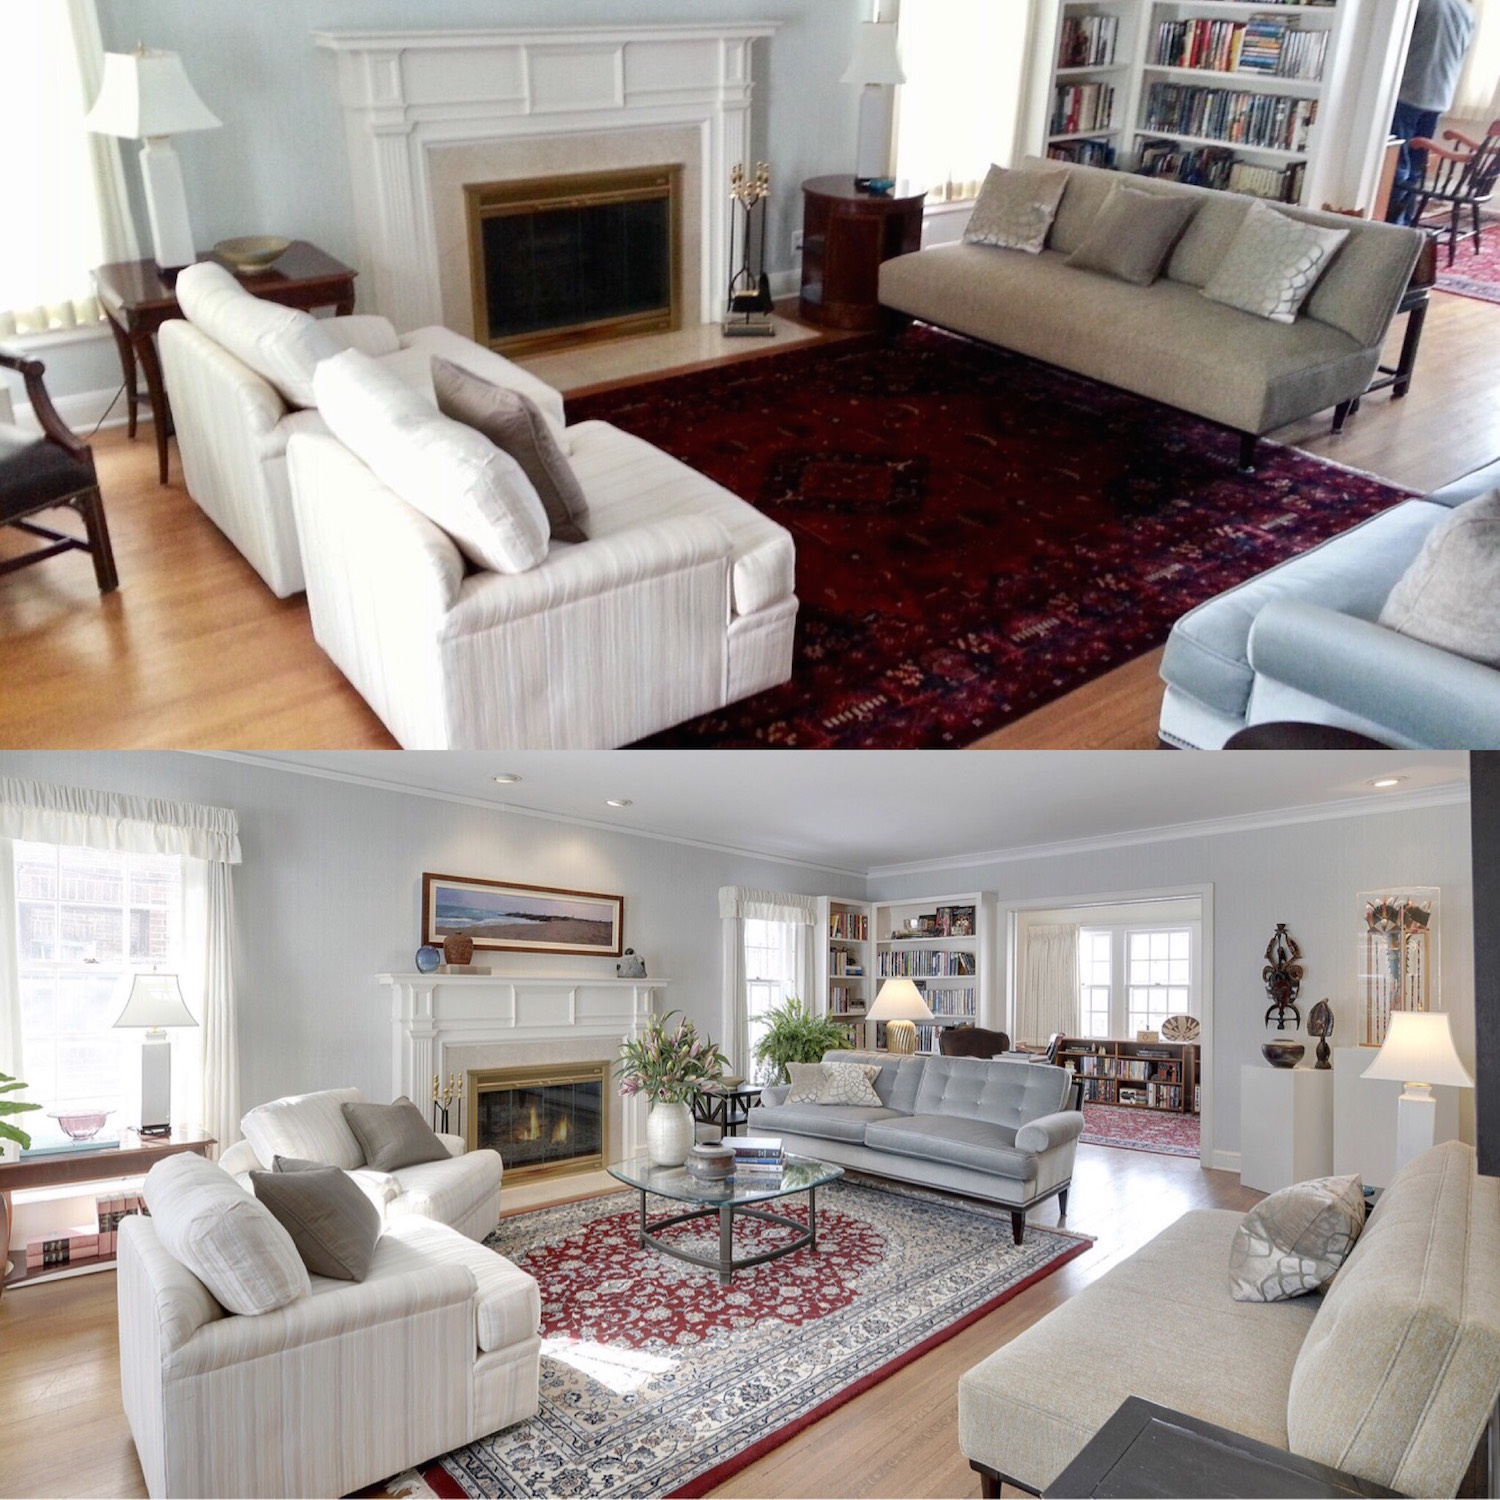 Before and After White fireplace.jpg